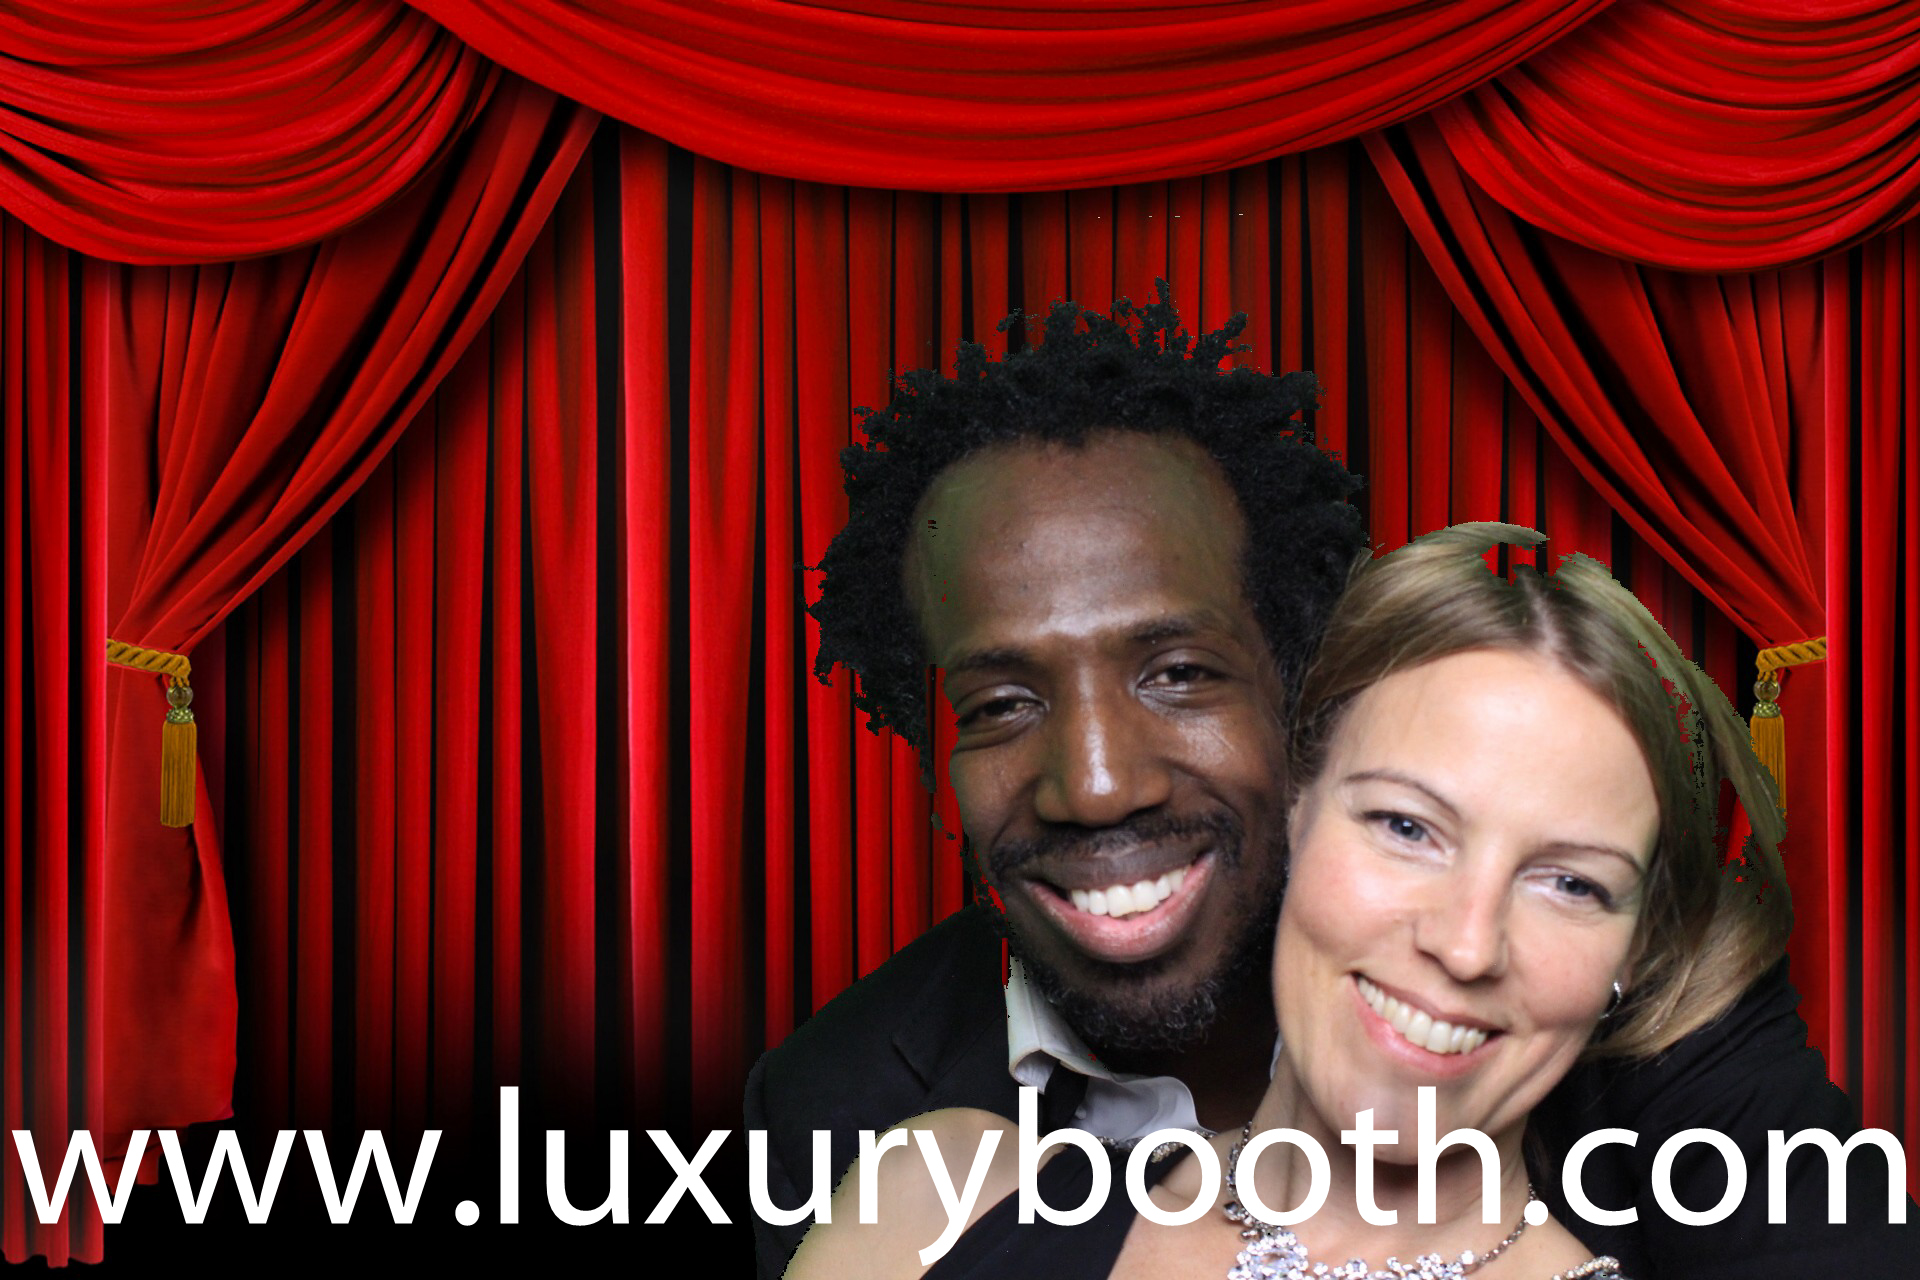 A couple in our oxford photo booth hire